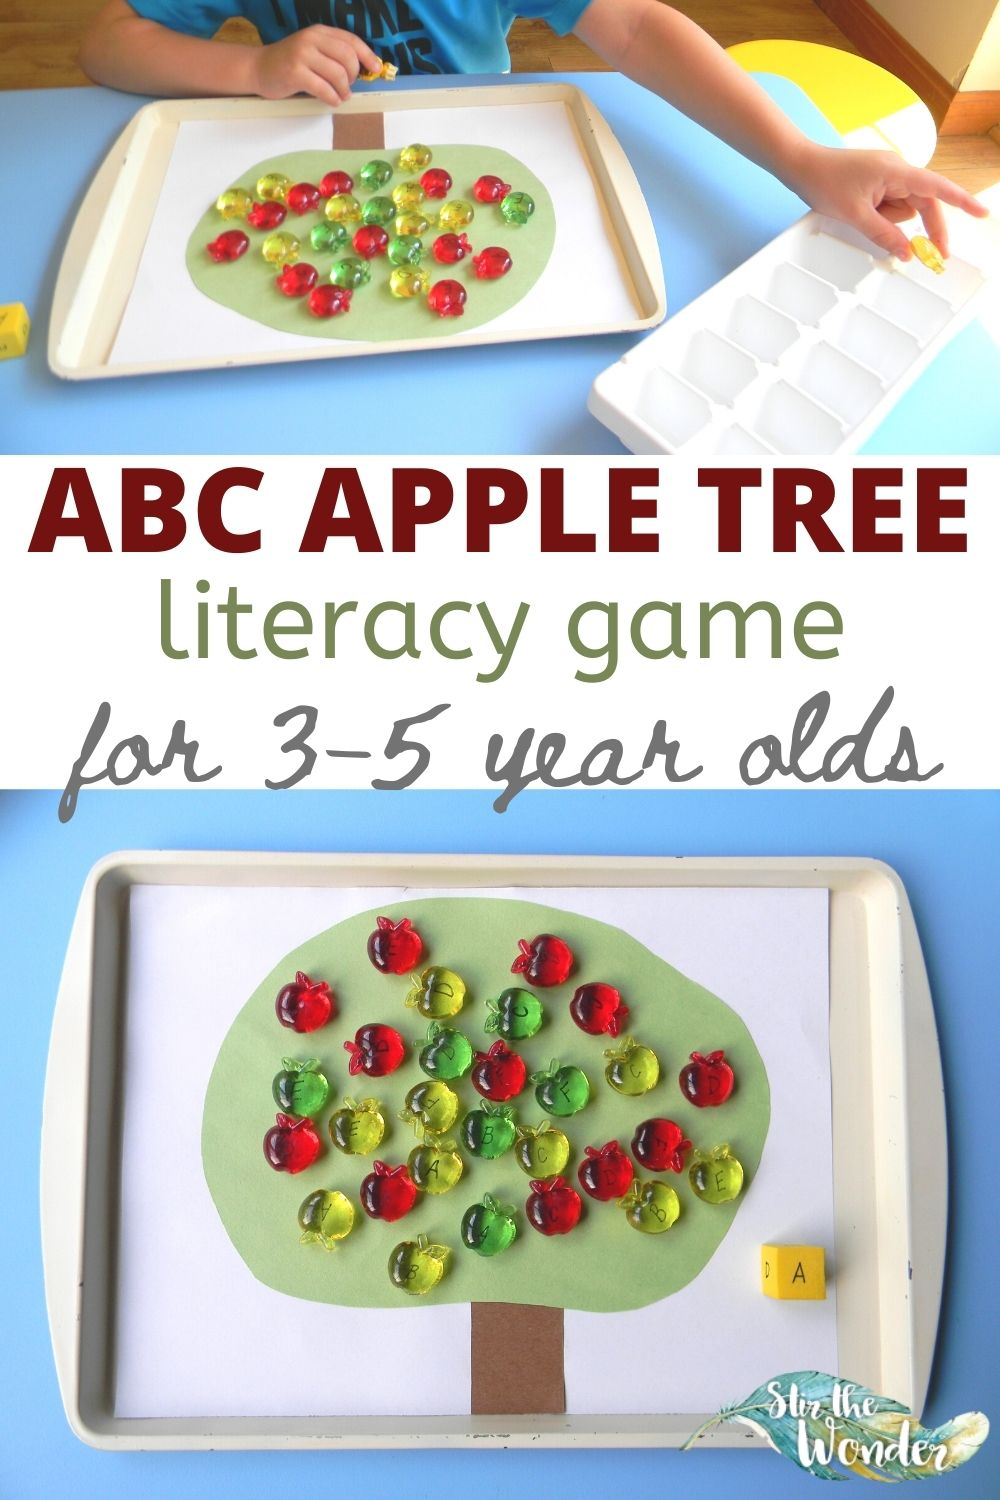 ABC Apple Tree Literacy Game is a fun way for 3-5 year old preschoolers to learn the alphabet letters!